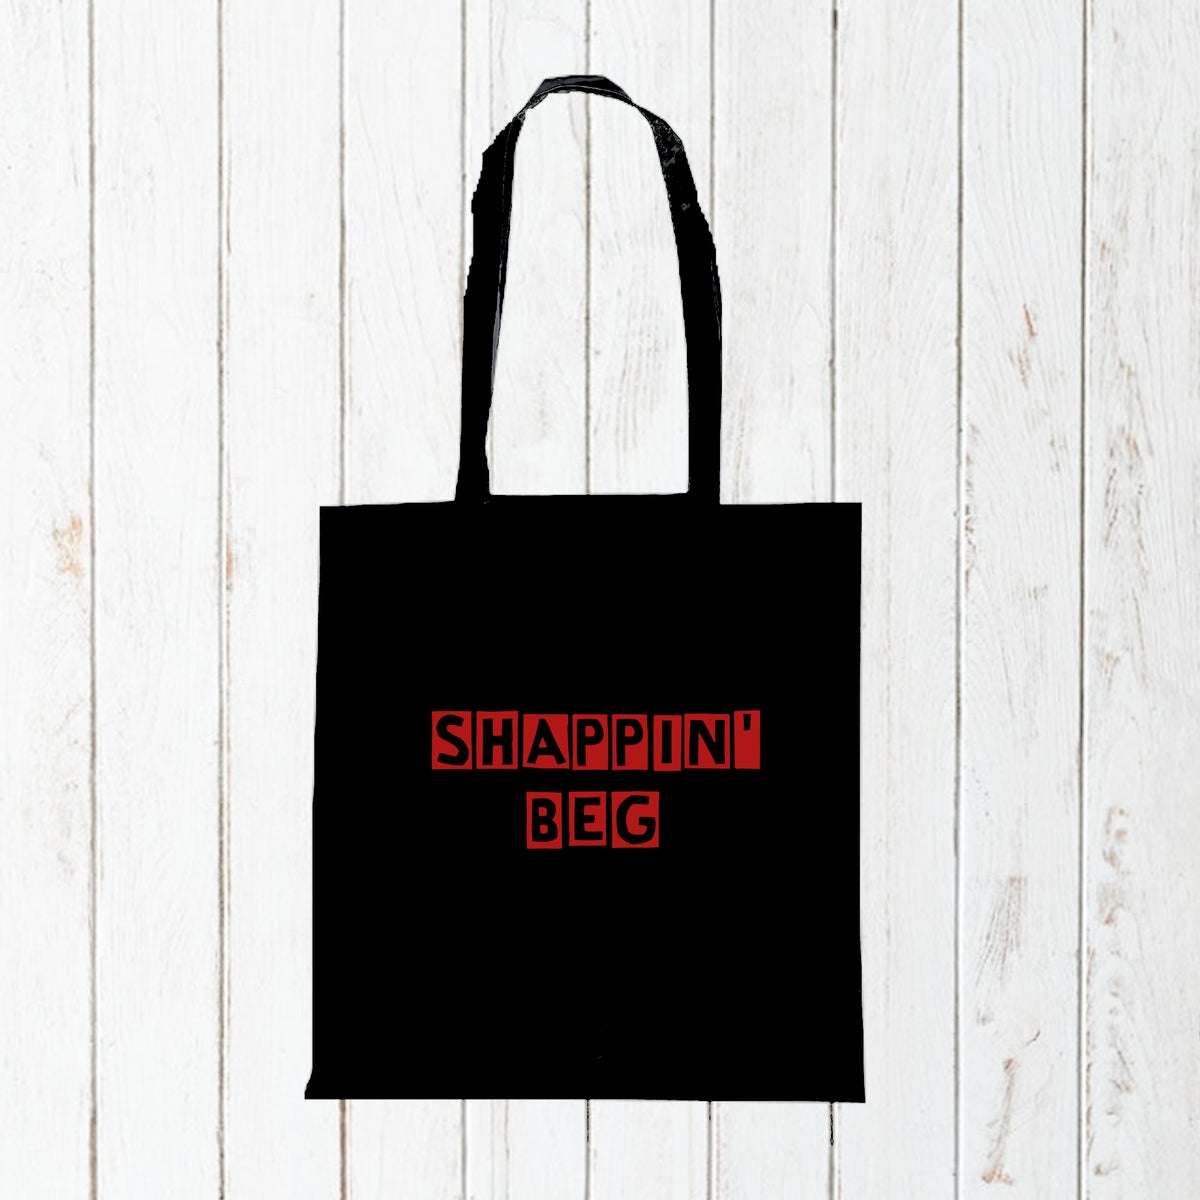 Shappin' Beg - Cotton Tote Bag